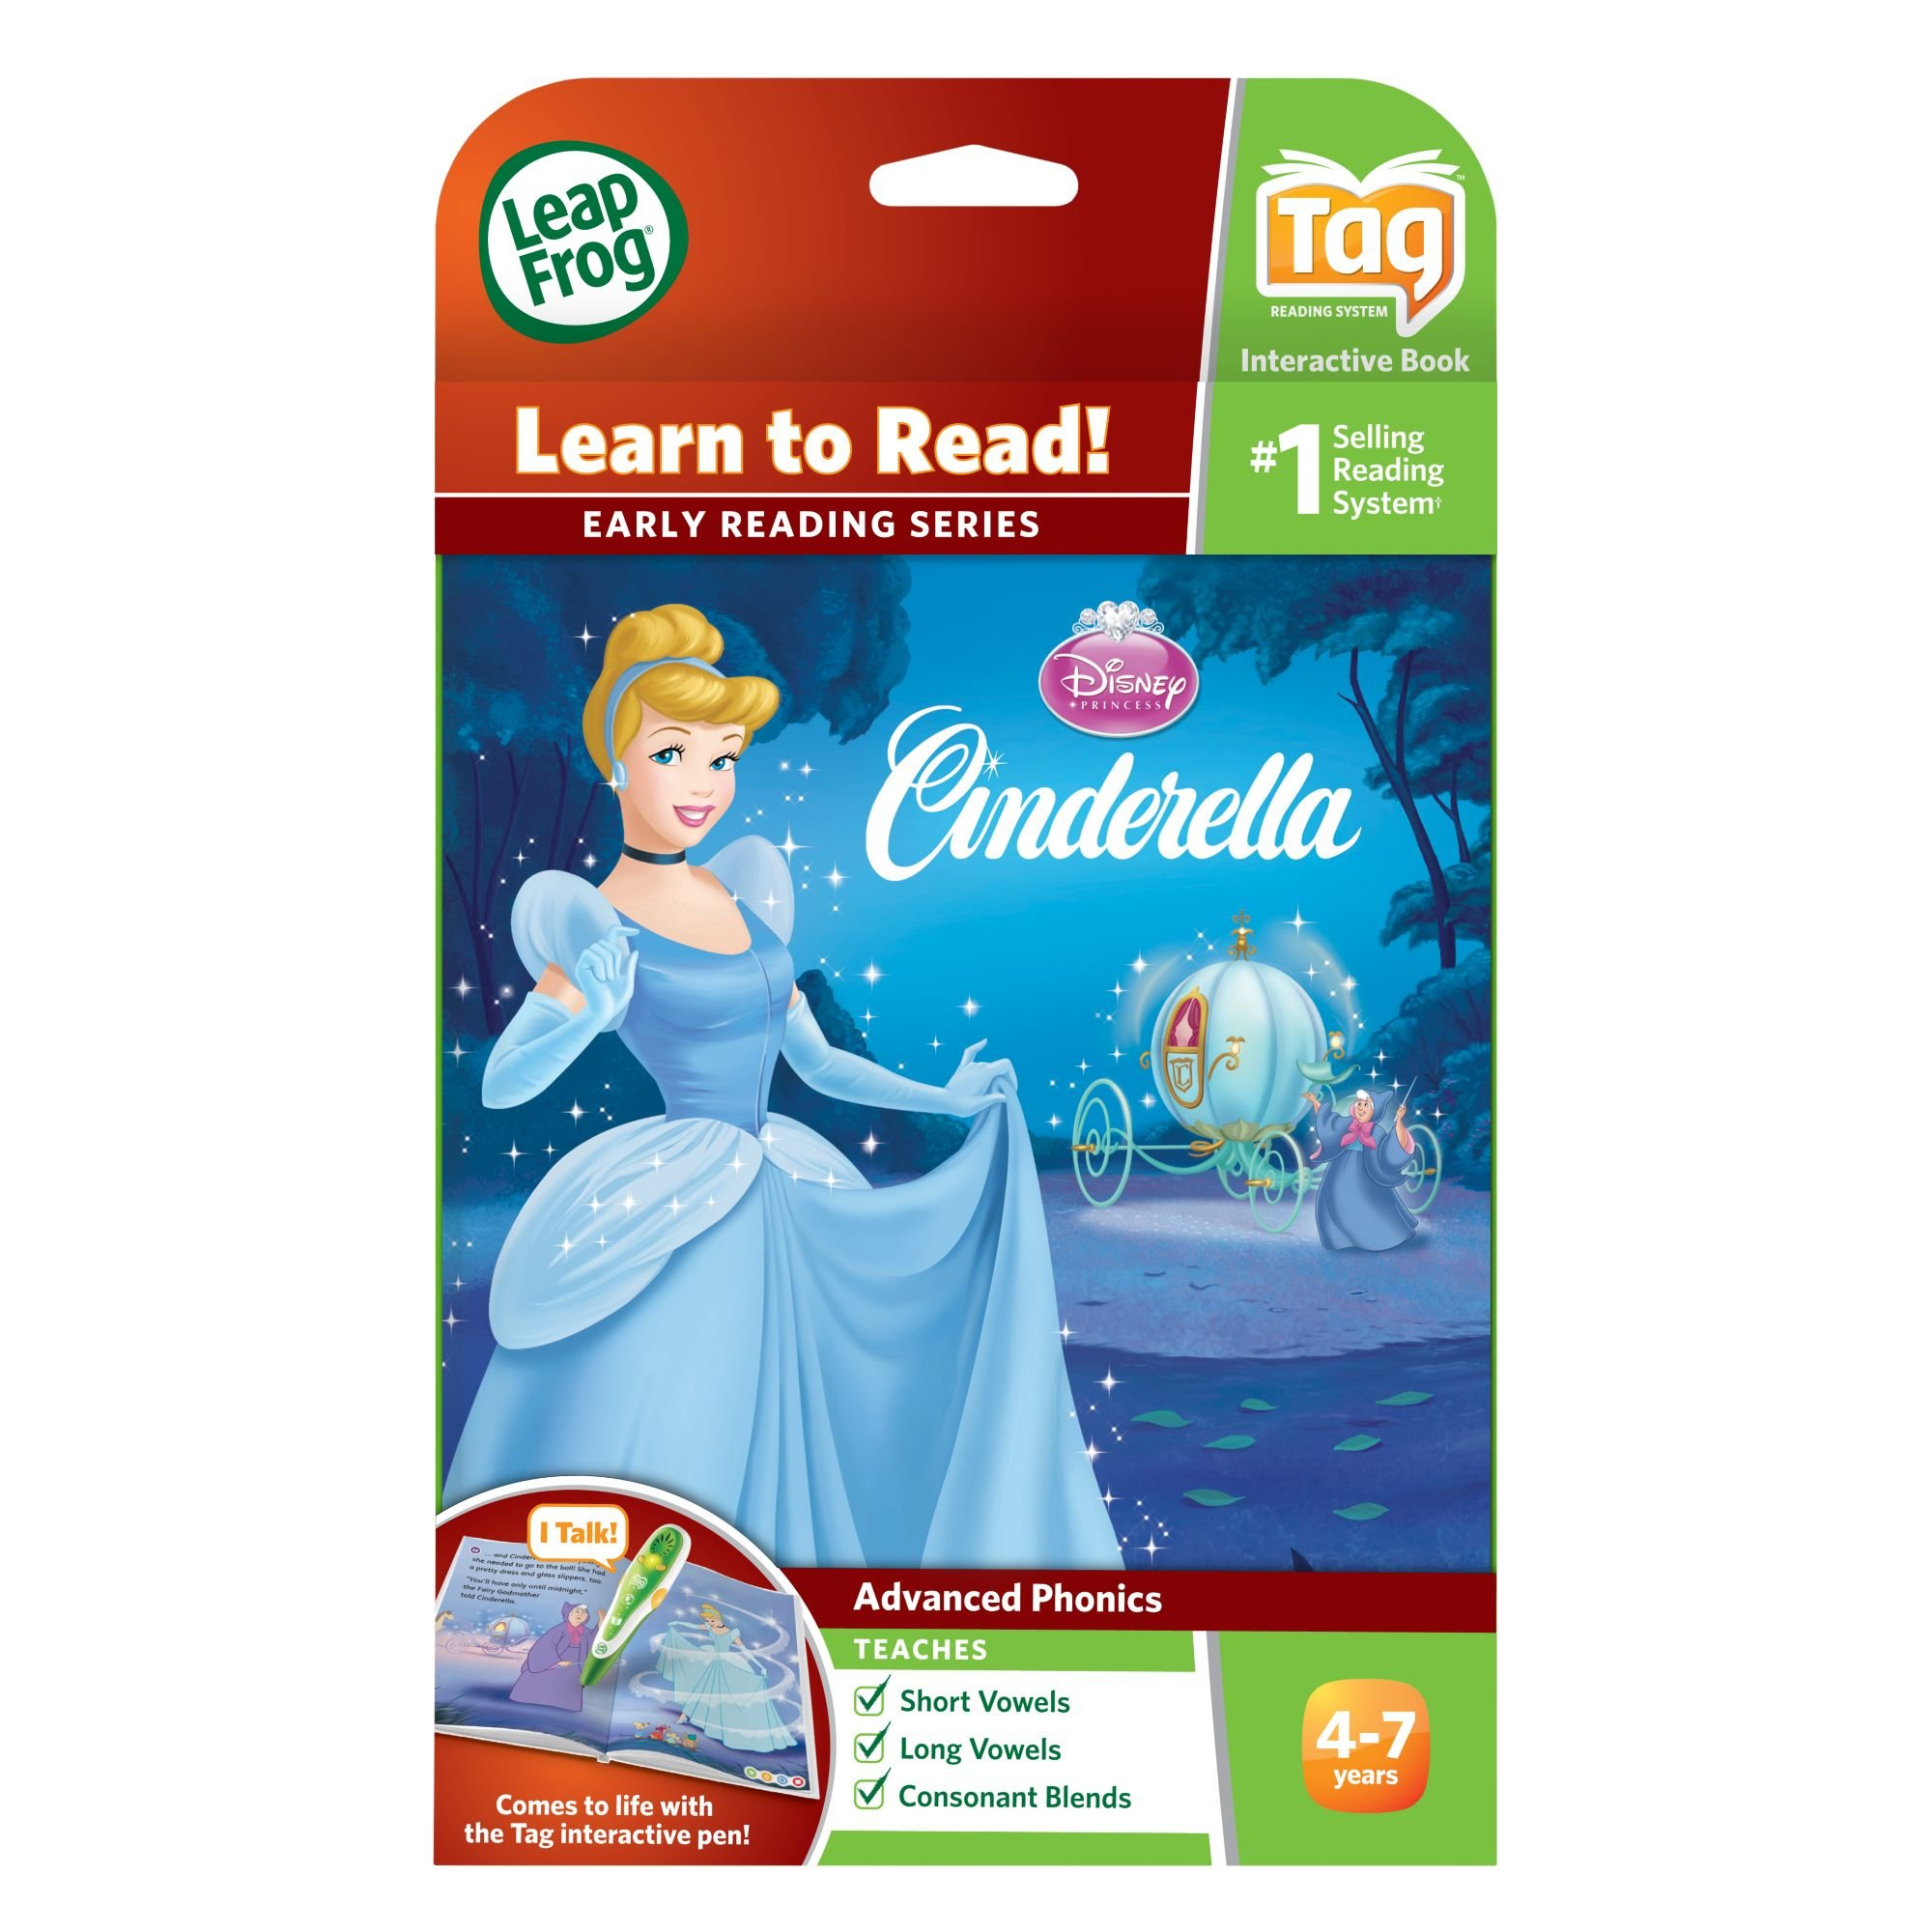 LeapFrog LeapReader Book: Disney Cinderella: The Heart That Believes (works with Tag) by LeapFrog (Image #3)